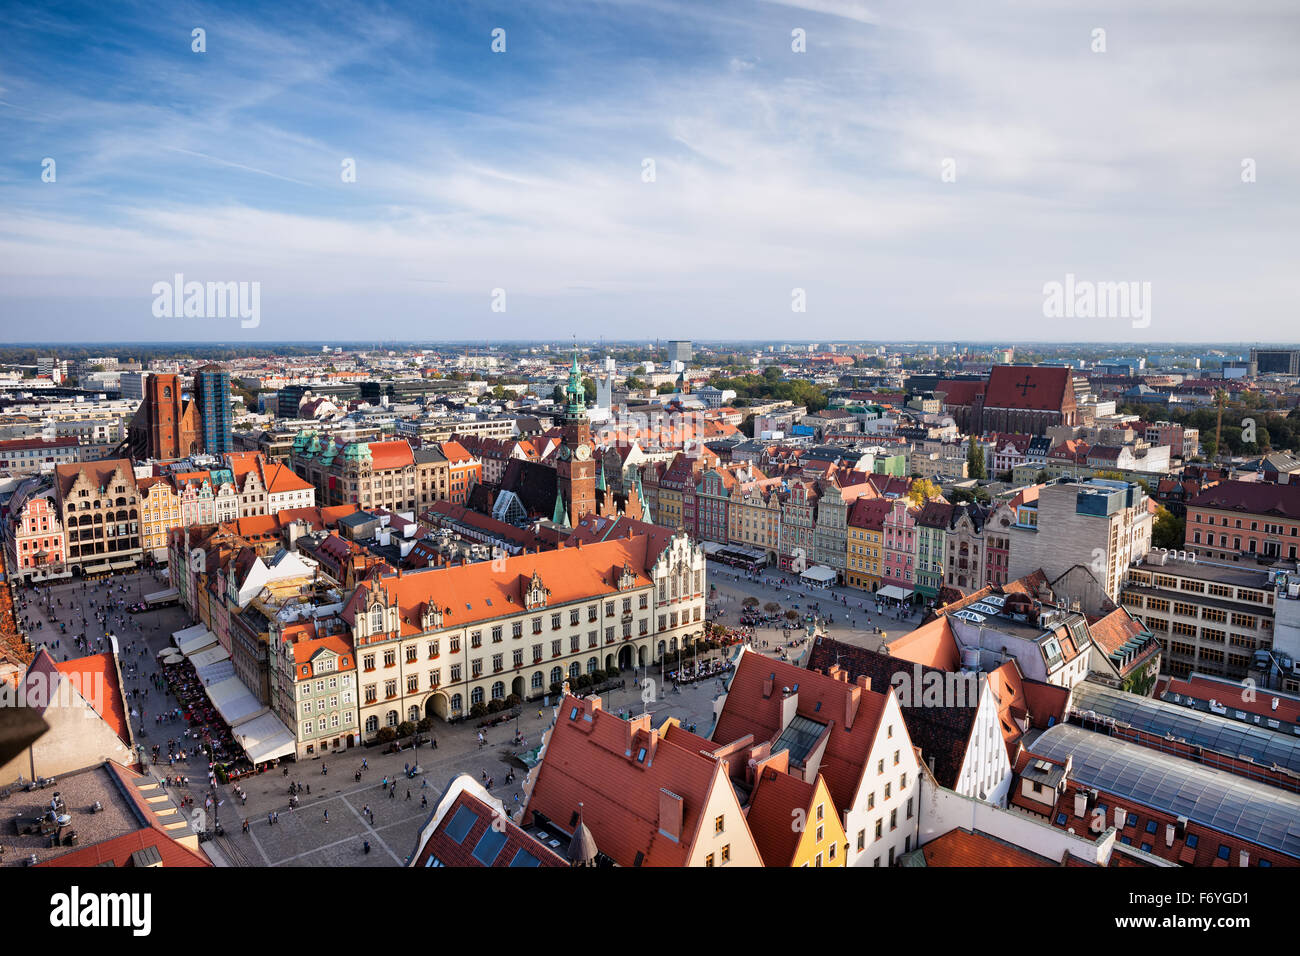 City of Wroclaw in Poland, Old Town Market Square from above. - Stock Image